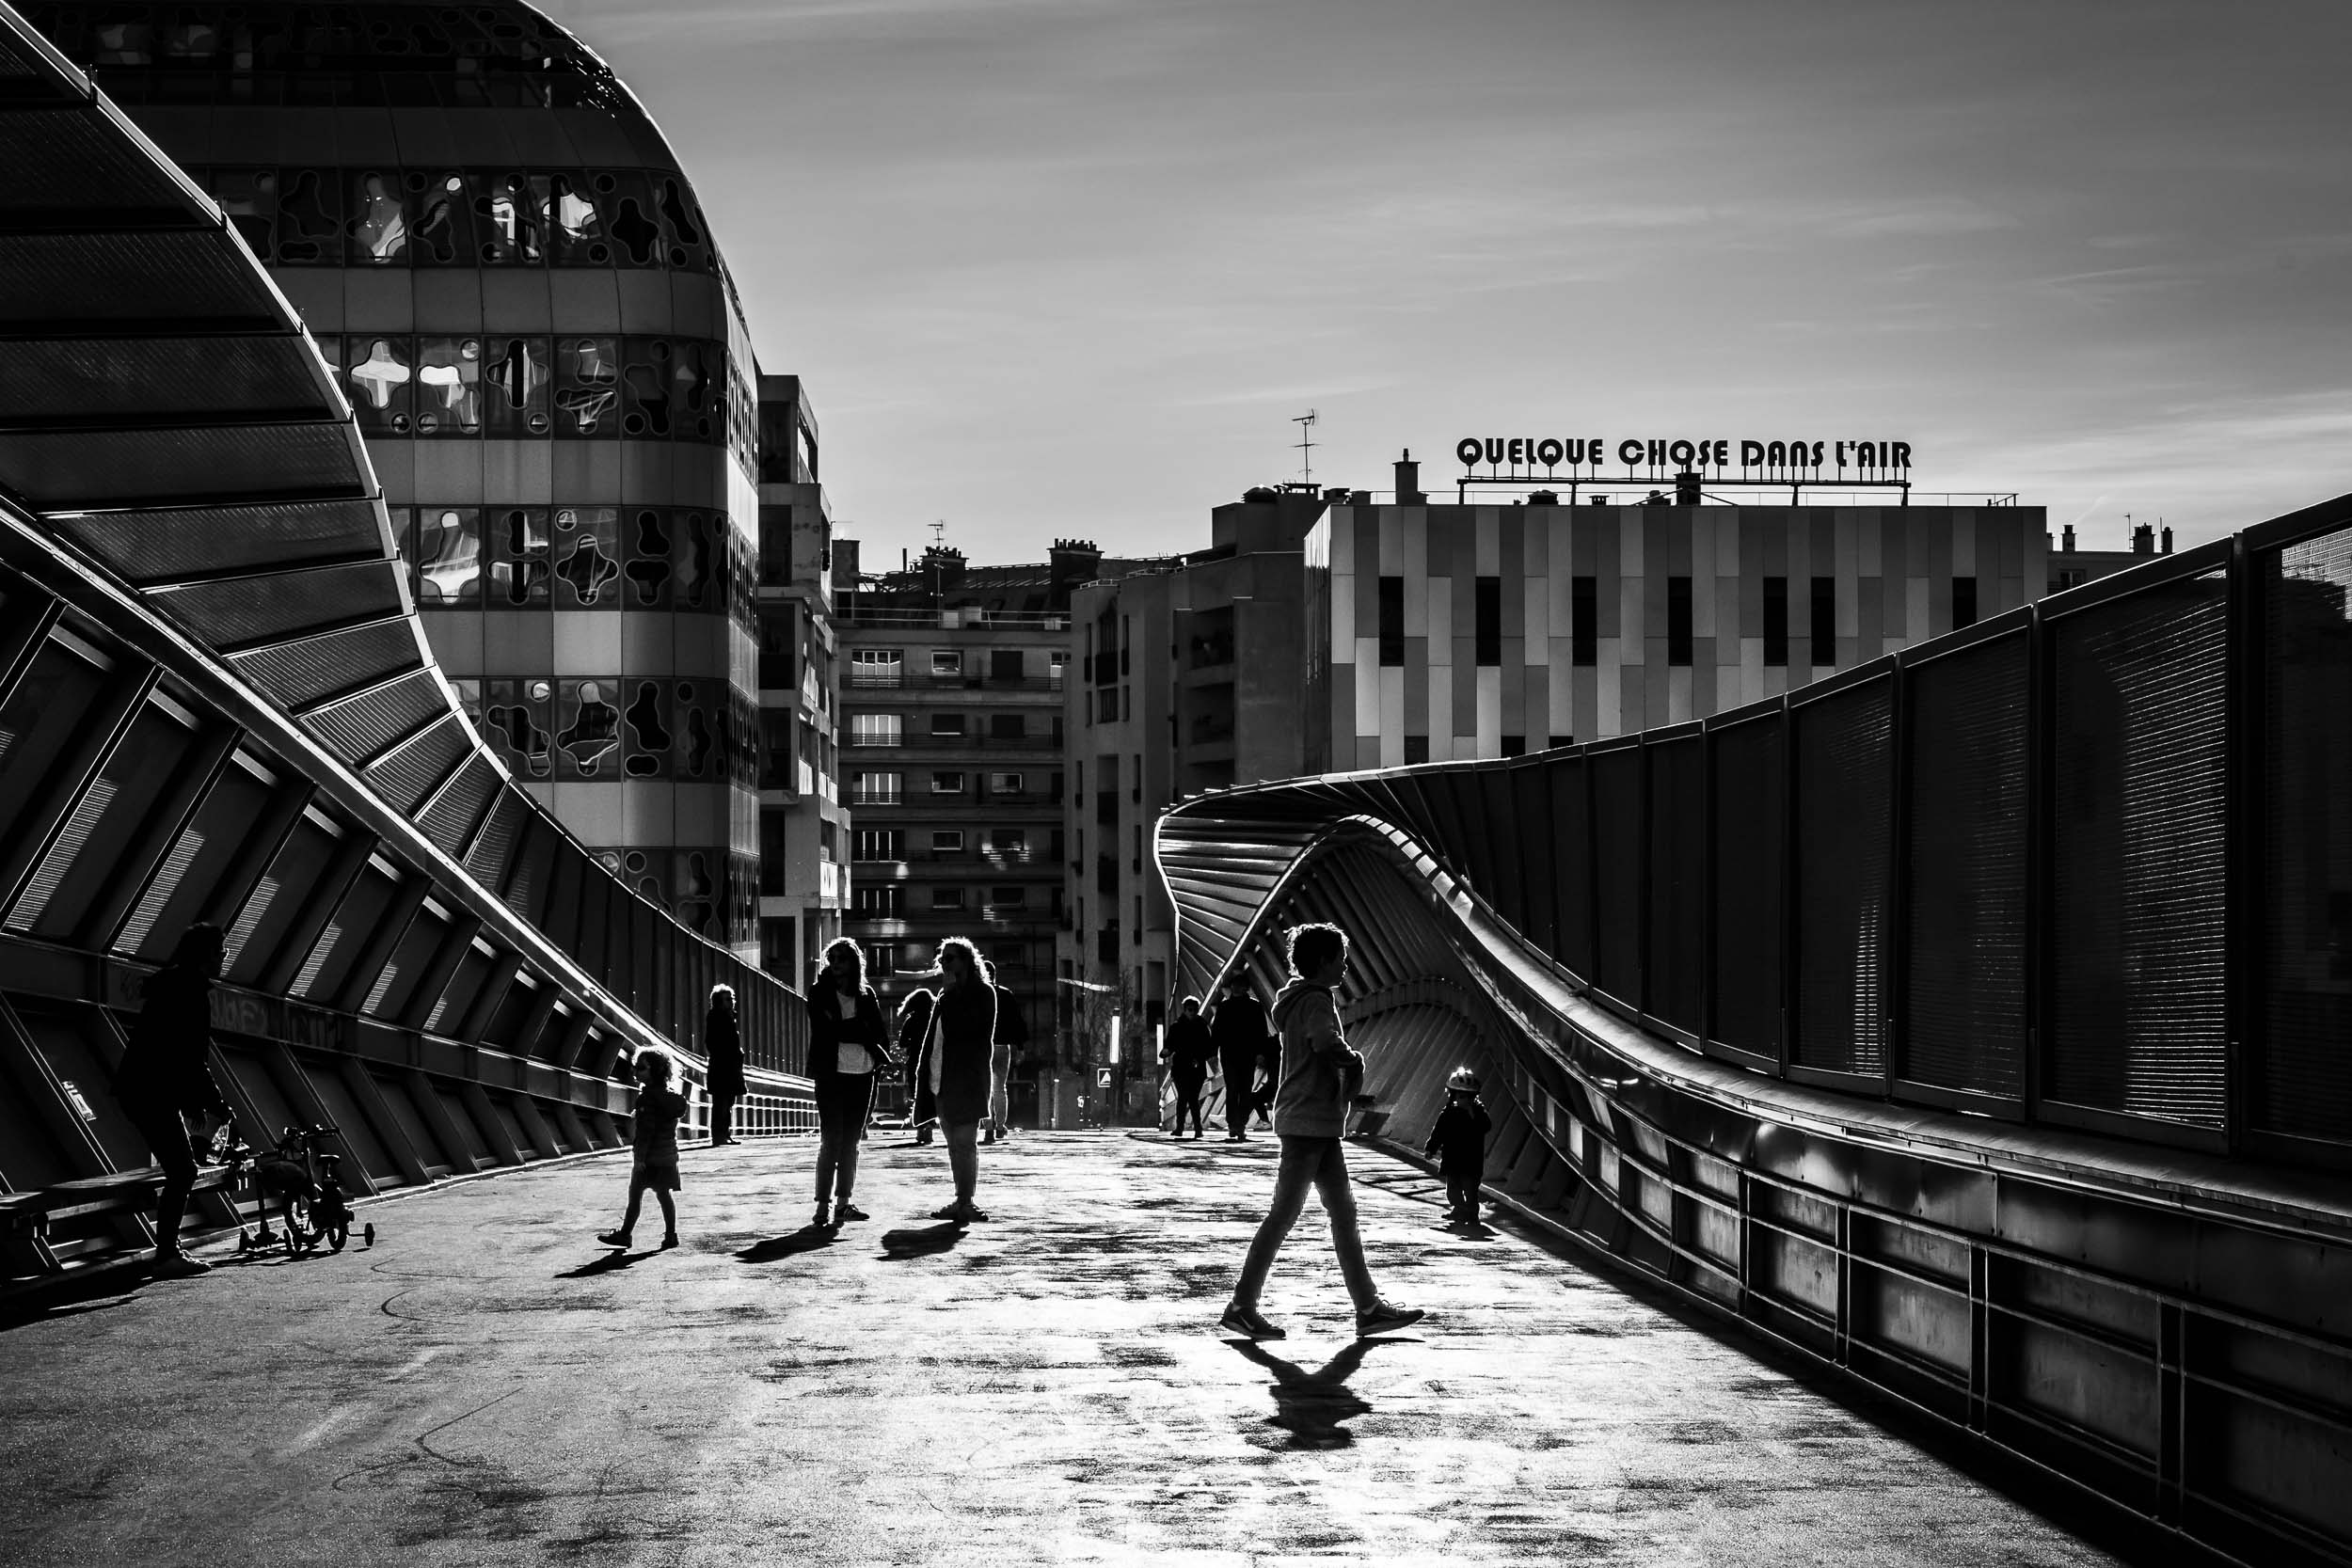 Paris-people-on-bridge-architecture.jpg